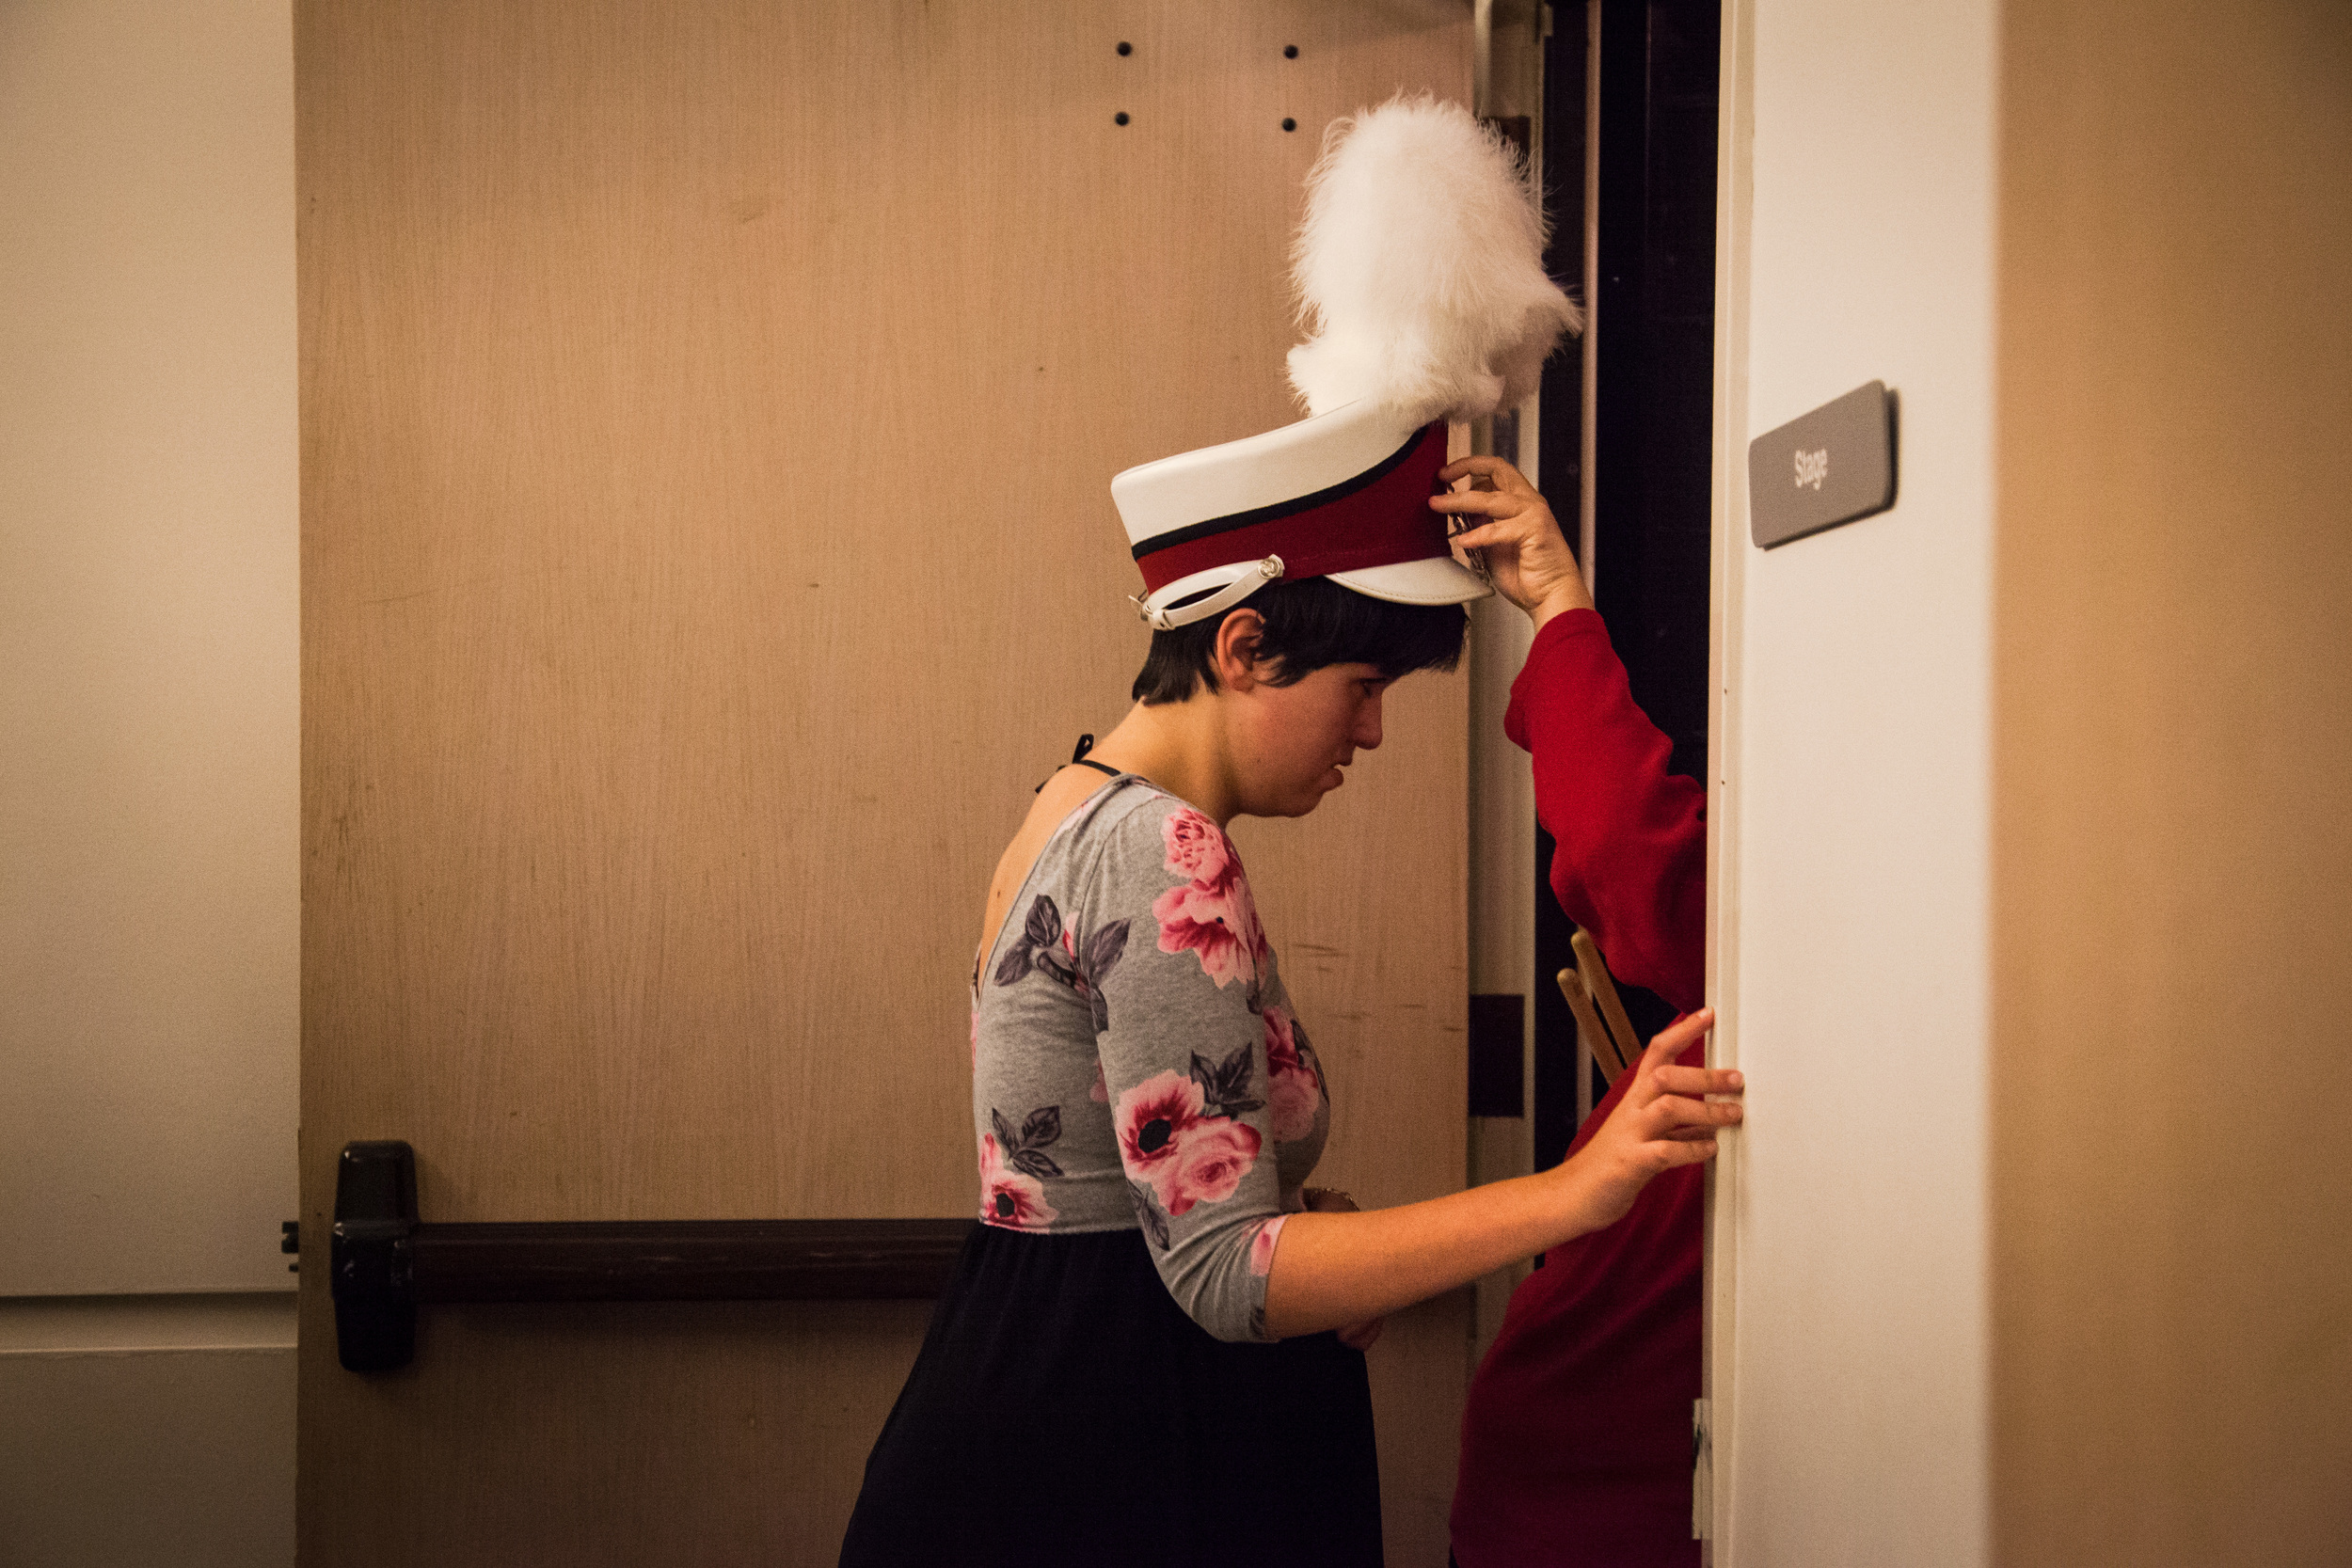 Jessica Peterson, 21, prepares to go onstage before the opening act of The Twelve Days of Christmas during the Snohomish County Capernaum's Got Talent Variety Show hosted by Young Life on December 5, 2015. The evening showcased the talents of young people living with disabilities as they performed onstage in the Public Utility District building.